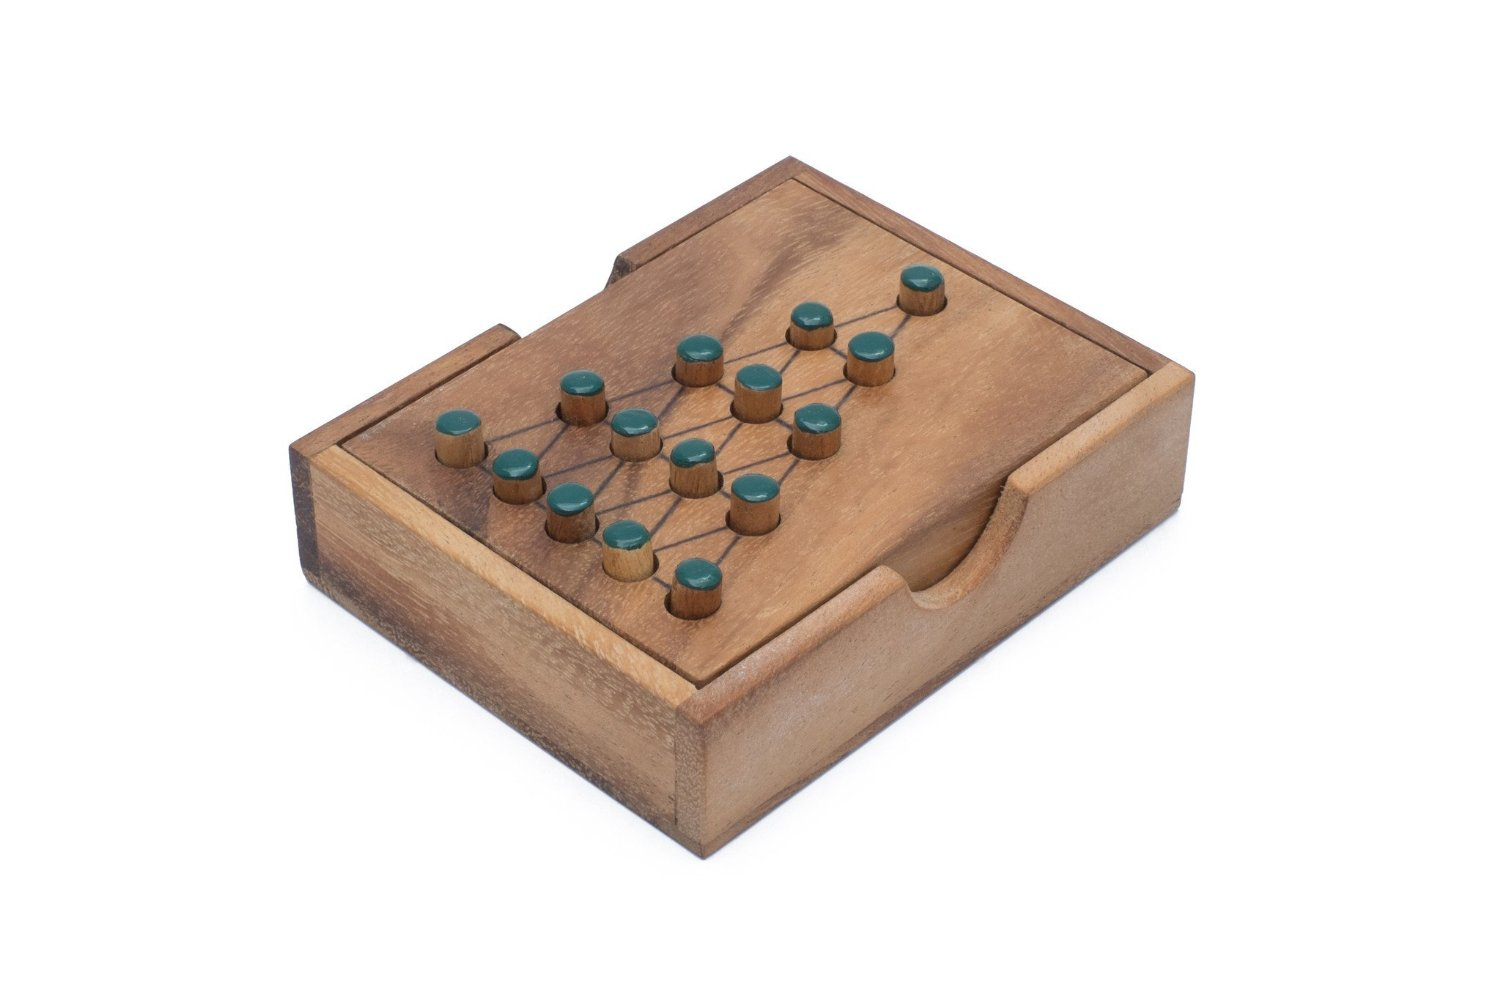 SiamMandalay: Solitaire Tree - Wooden Peg Puzzle Sequential Move One Player Puzzle. 3D Combination Brain Teaser Puzzle with